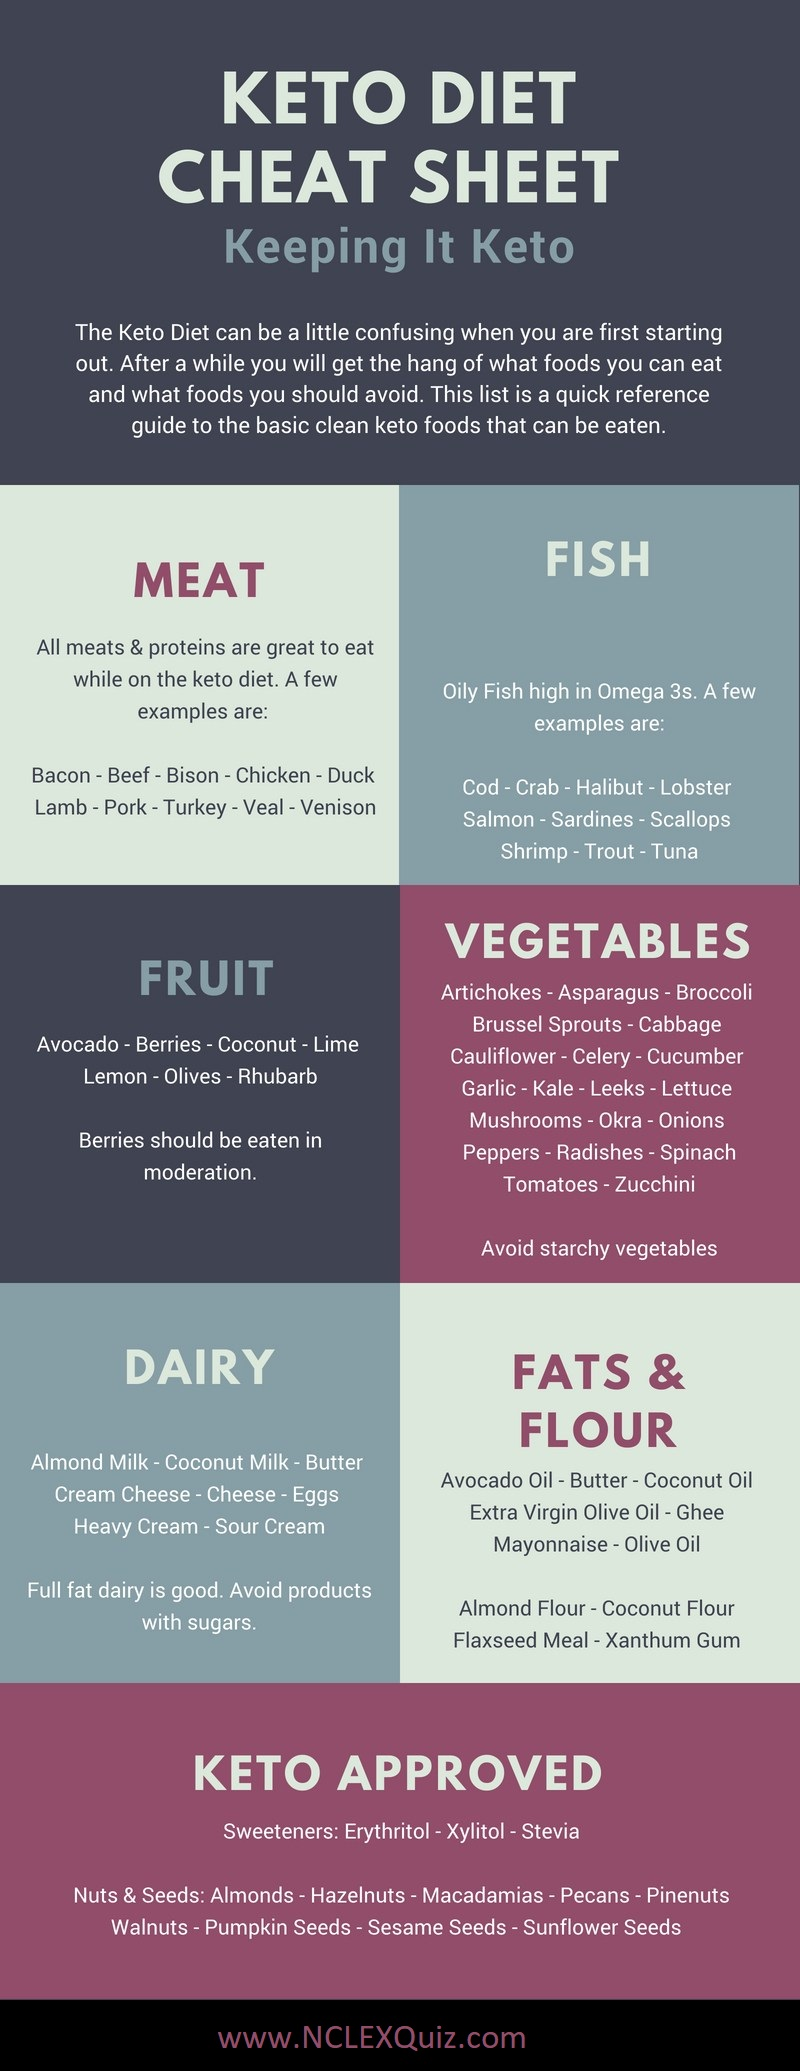 Keto Diet Cheat Sheet – 100% Keto Approved!